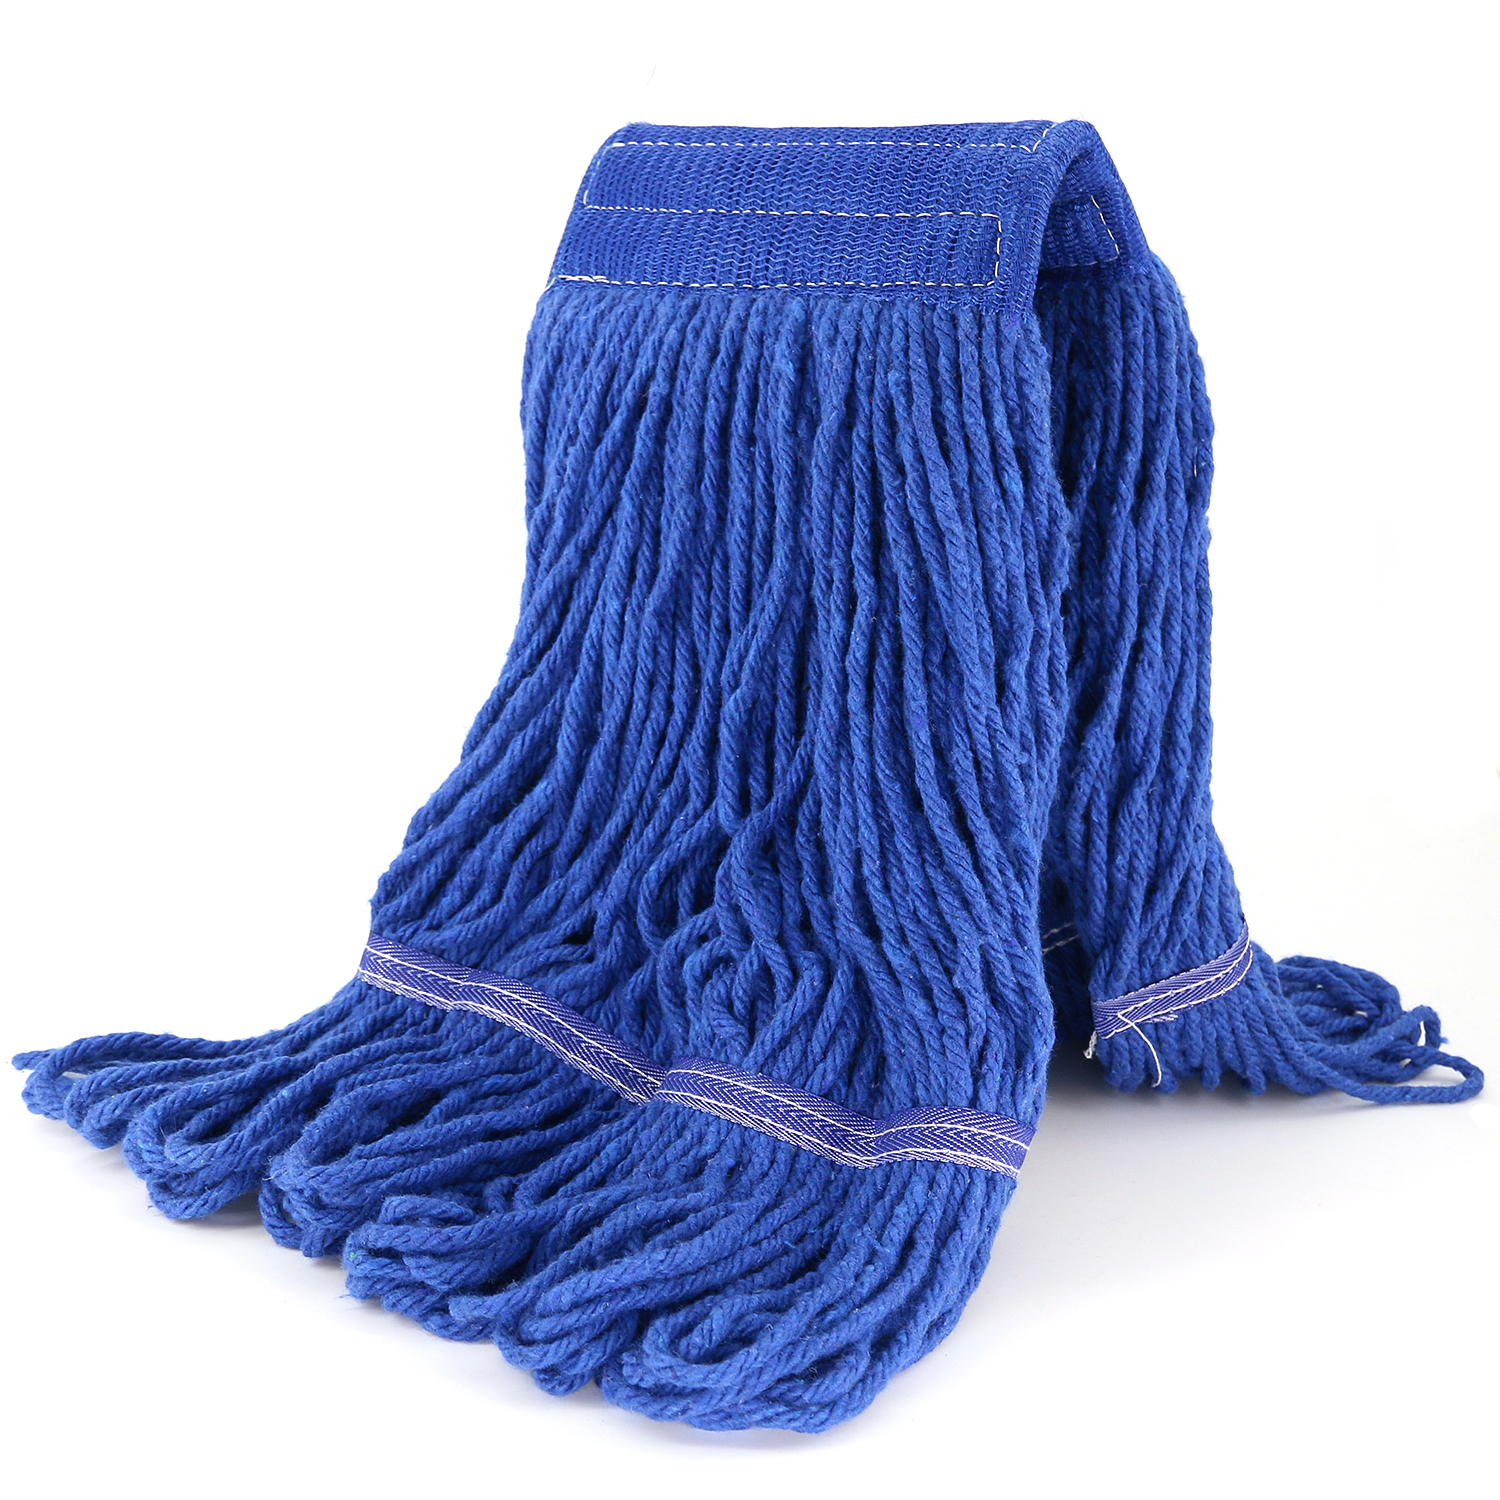 Bonison Commercial Use Wringer Style Replacement Mop Head For Clamp Mop With Looped Ends And Yarn Tailband, Heavy Duty And Long Lasting. (1, Blue)